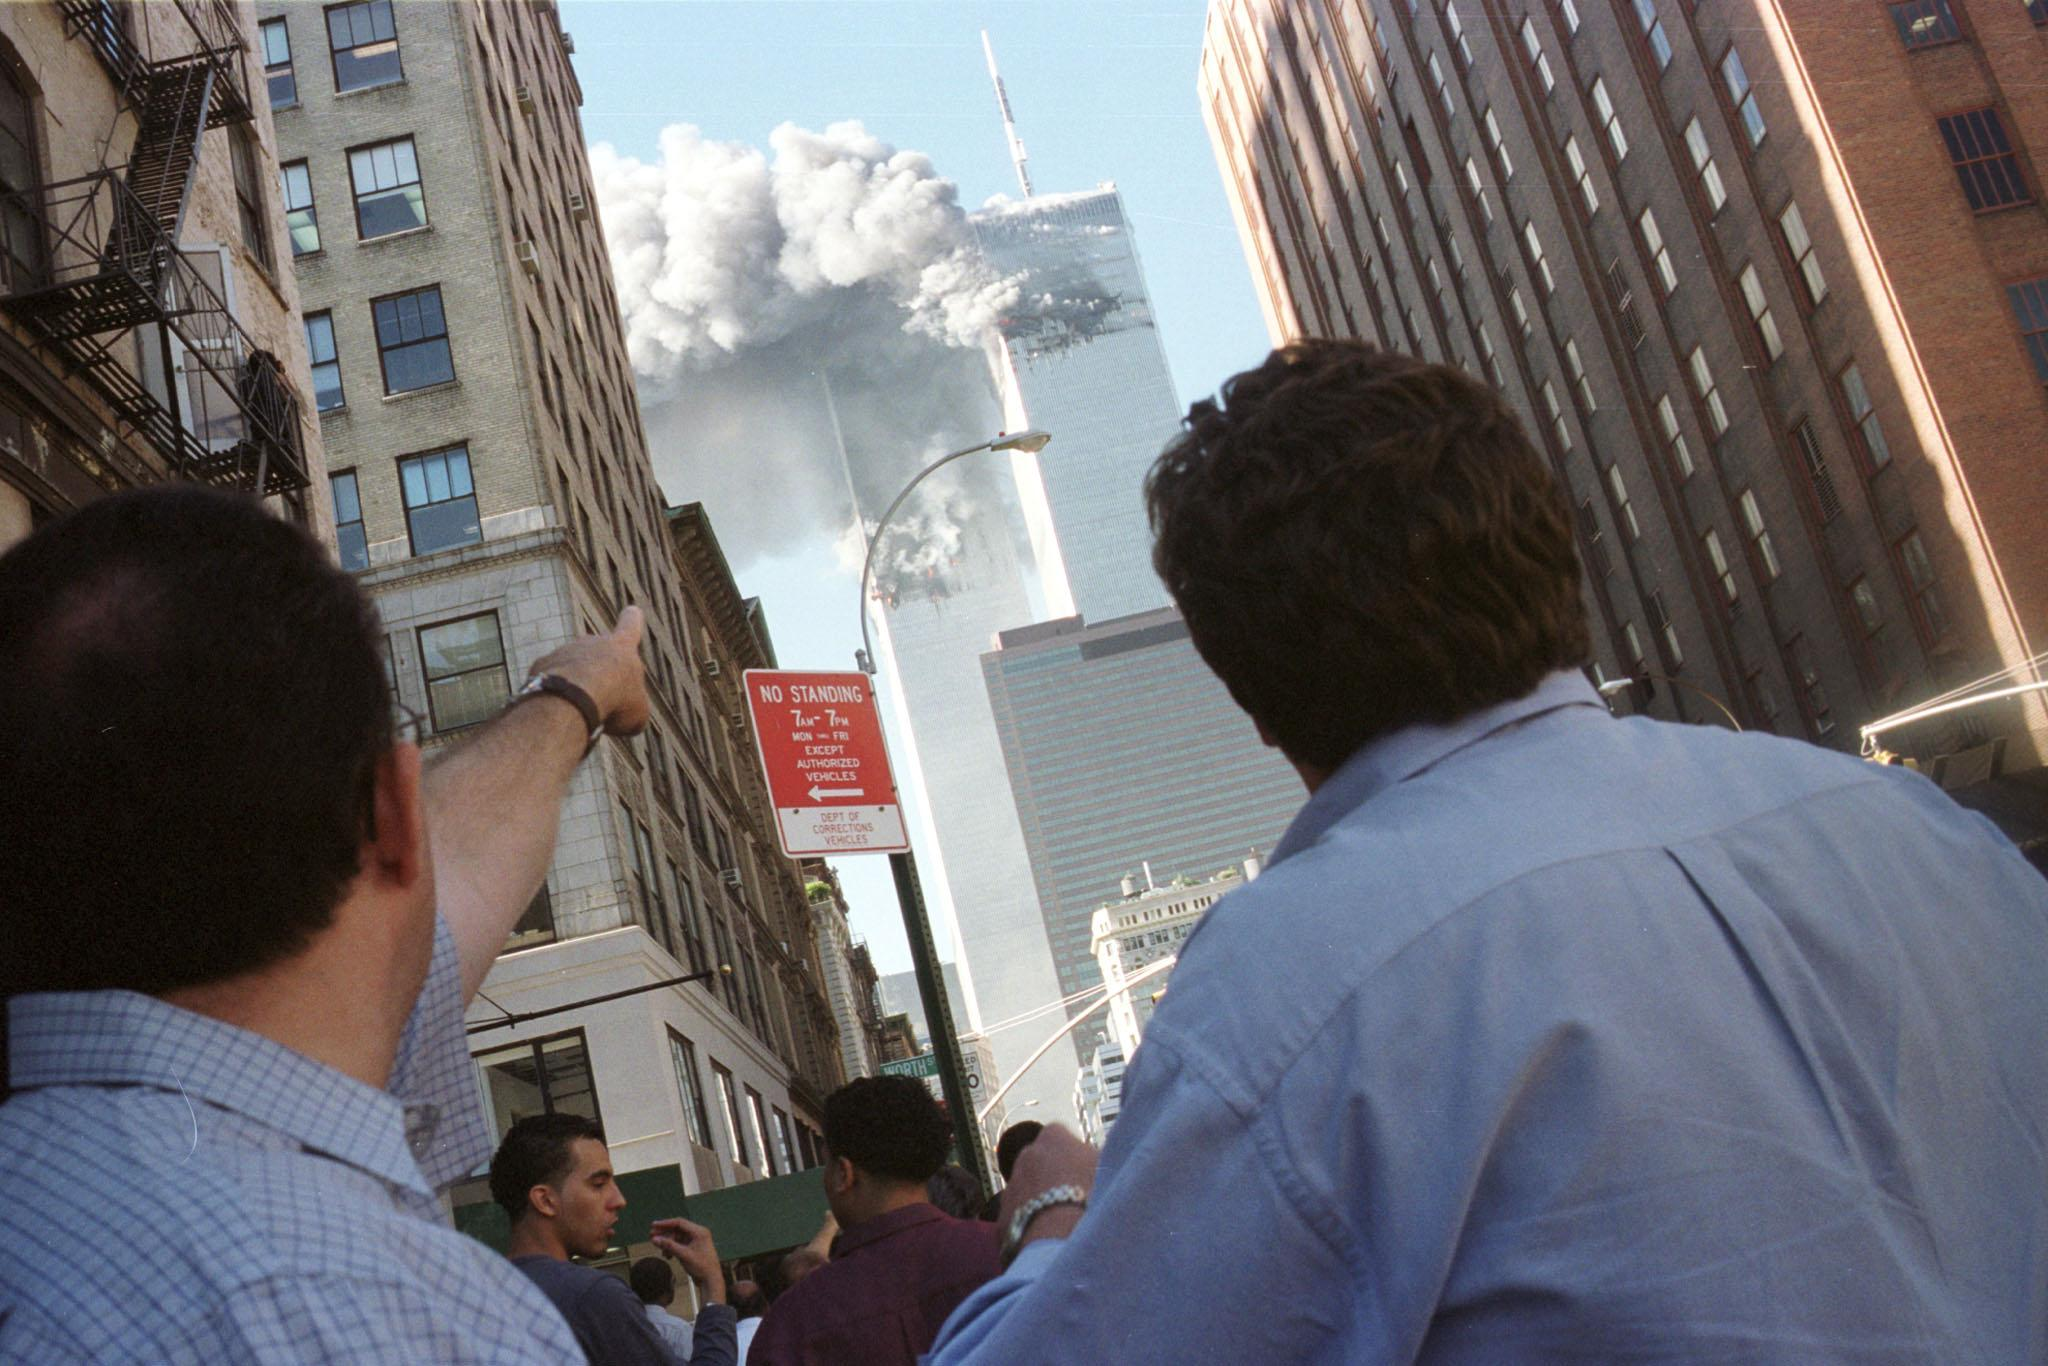 9/11 Attacks In Photos: 15 Iconic Images From Sept. 11